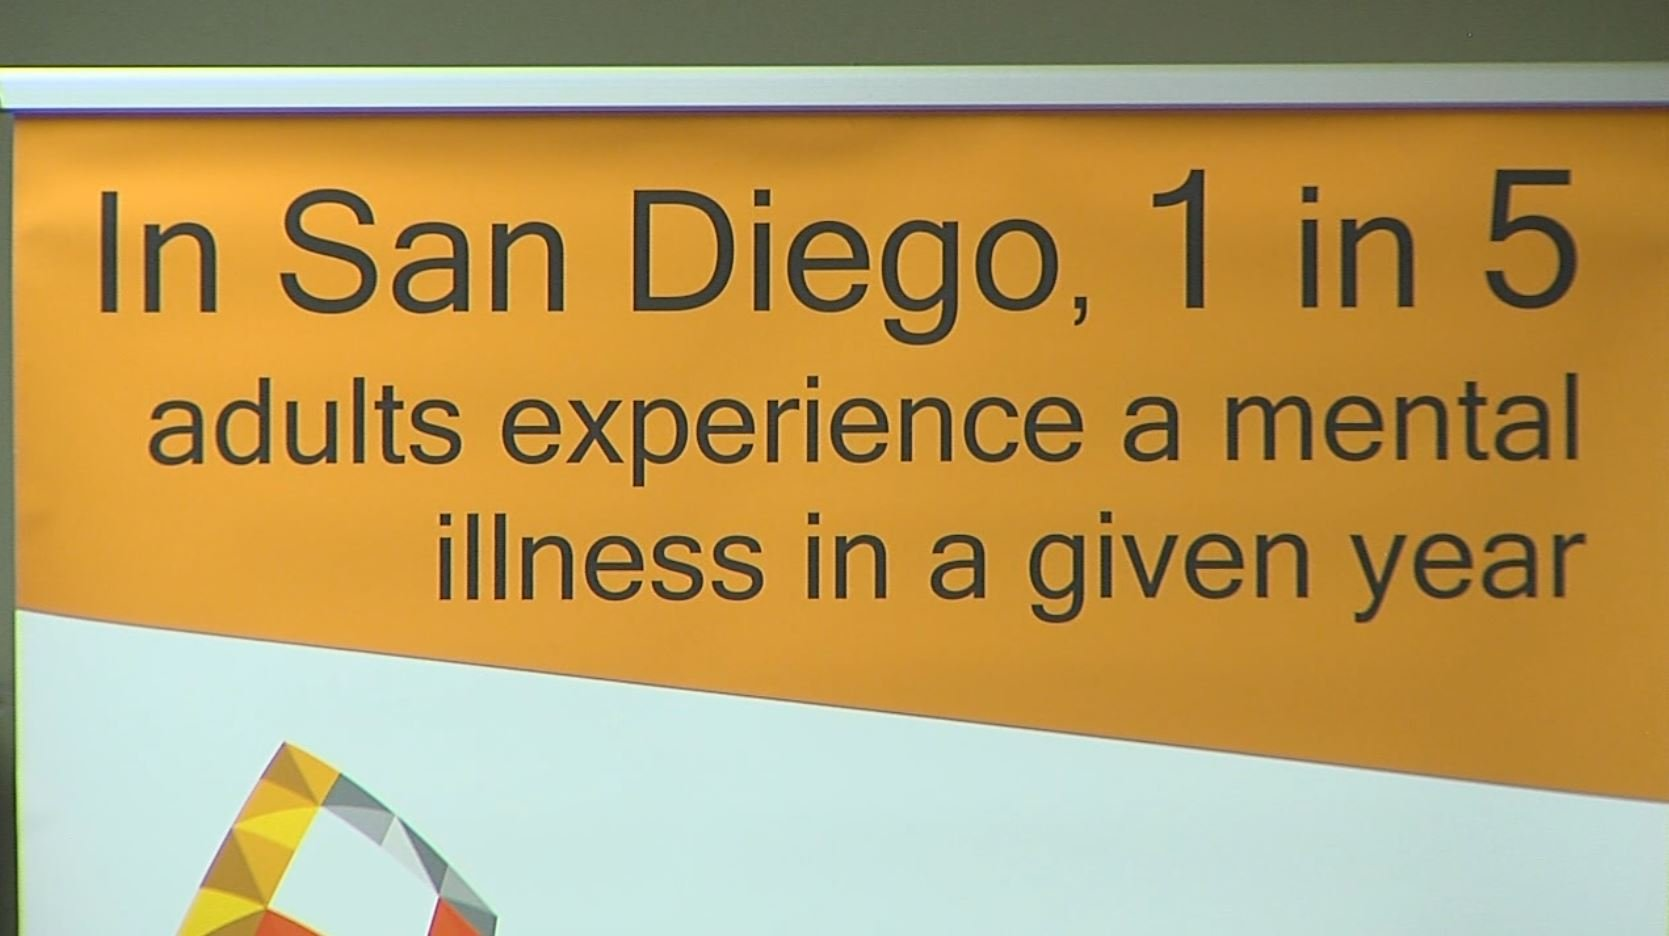 San Diego promotes crisis line in hopes of reducing suicide rate